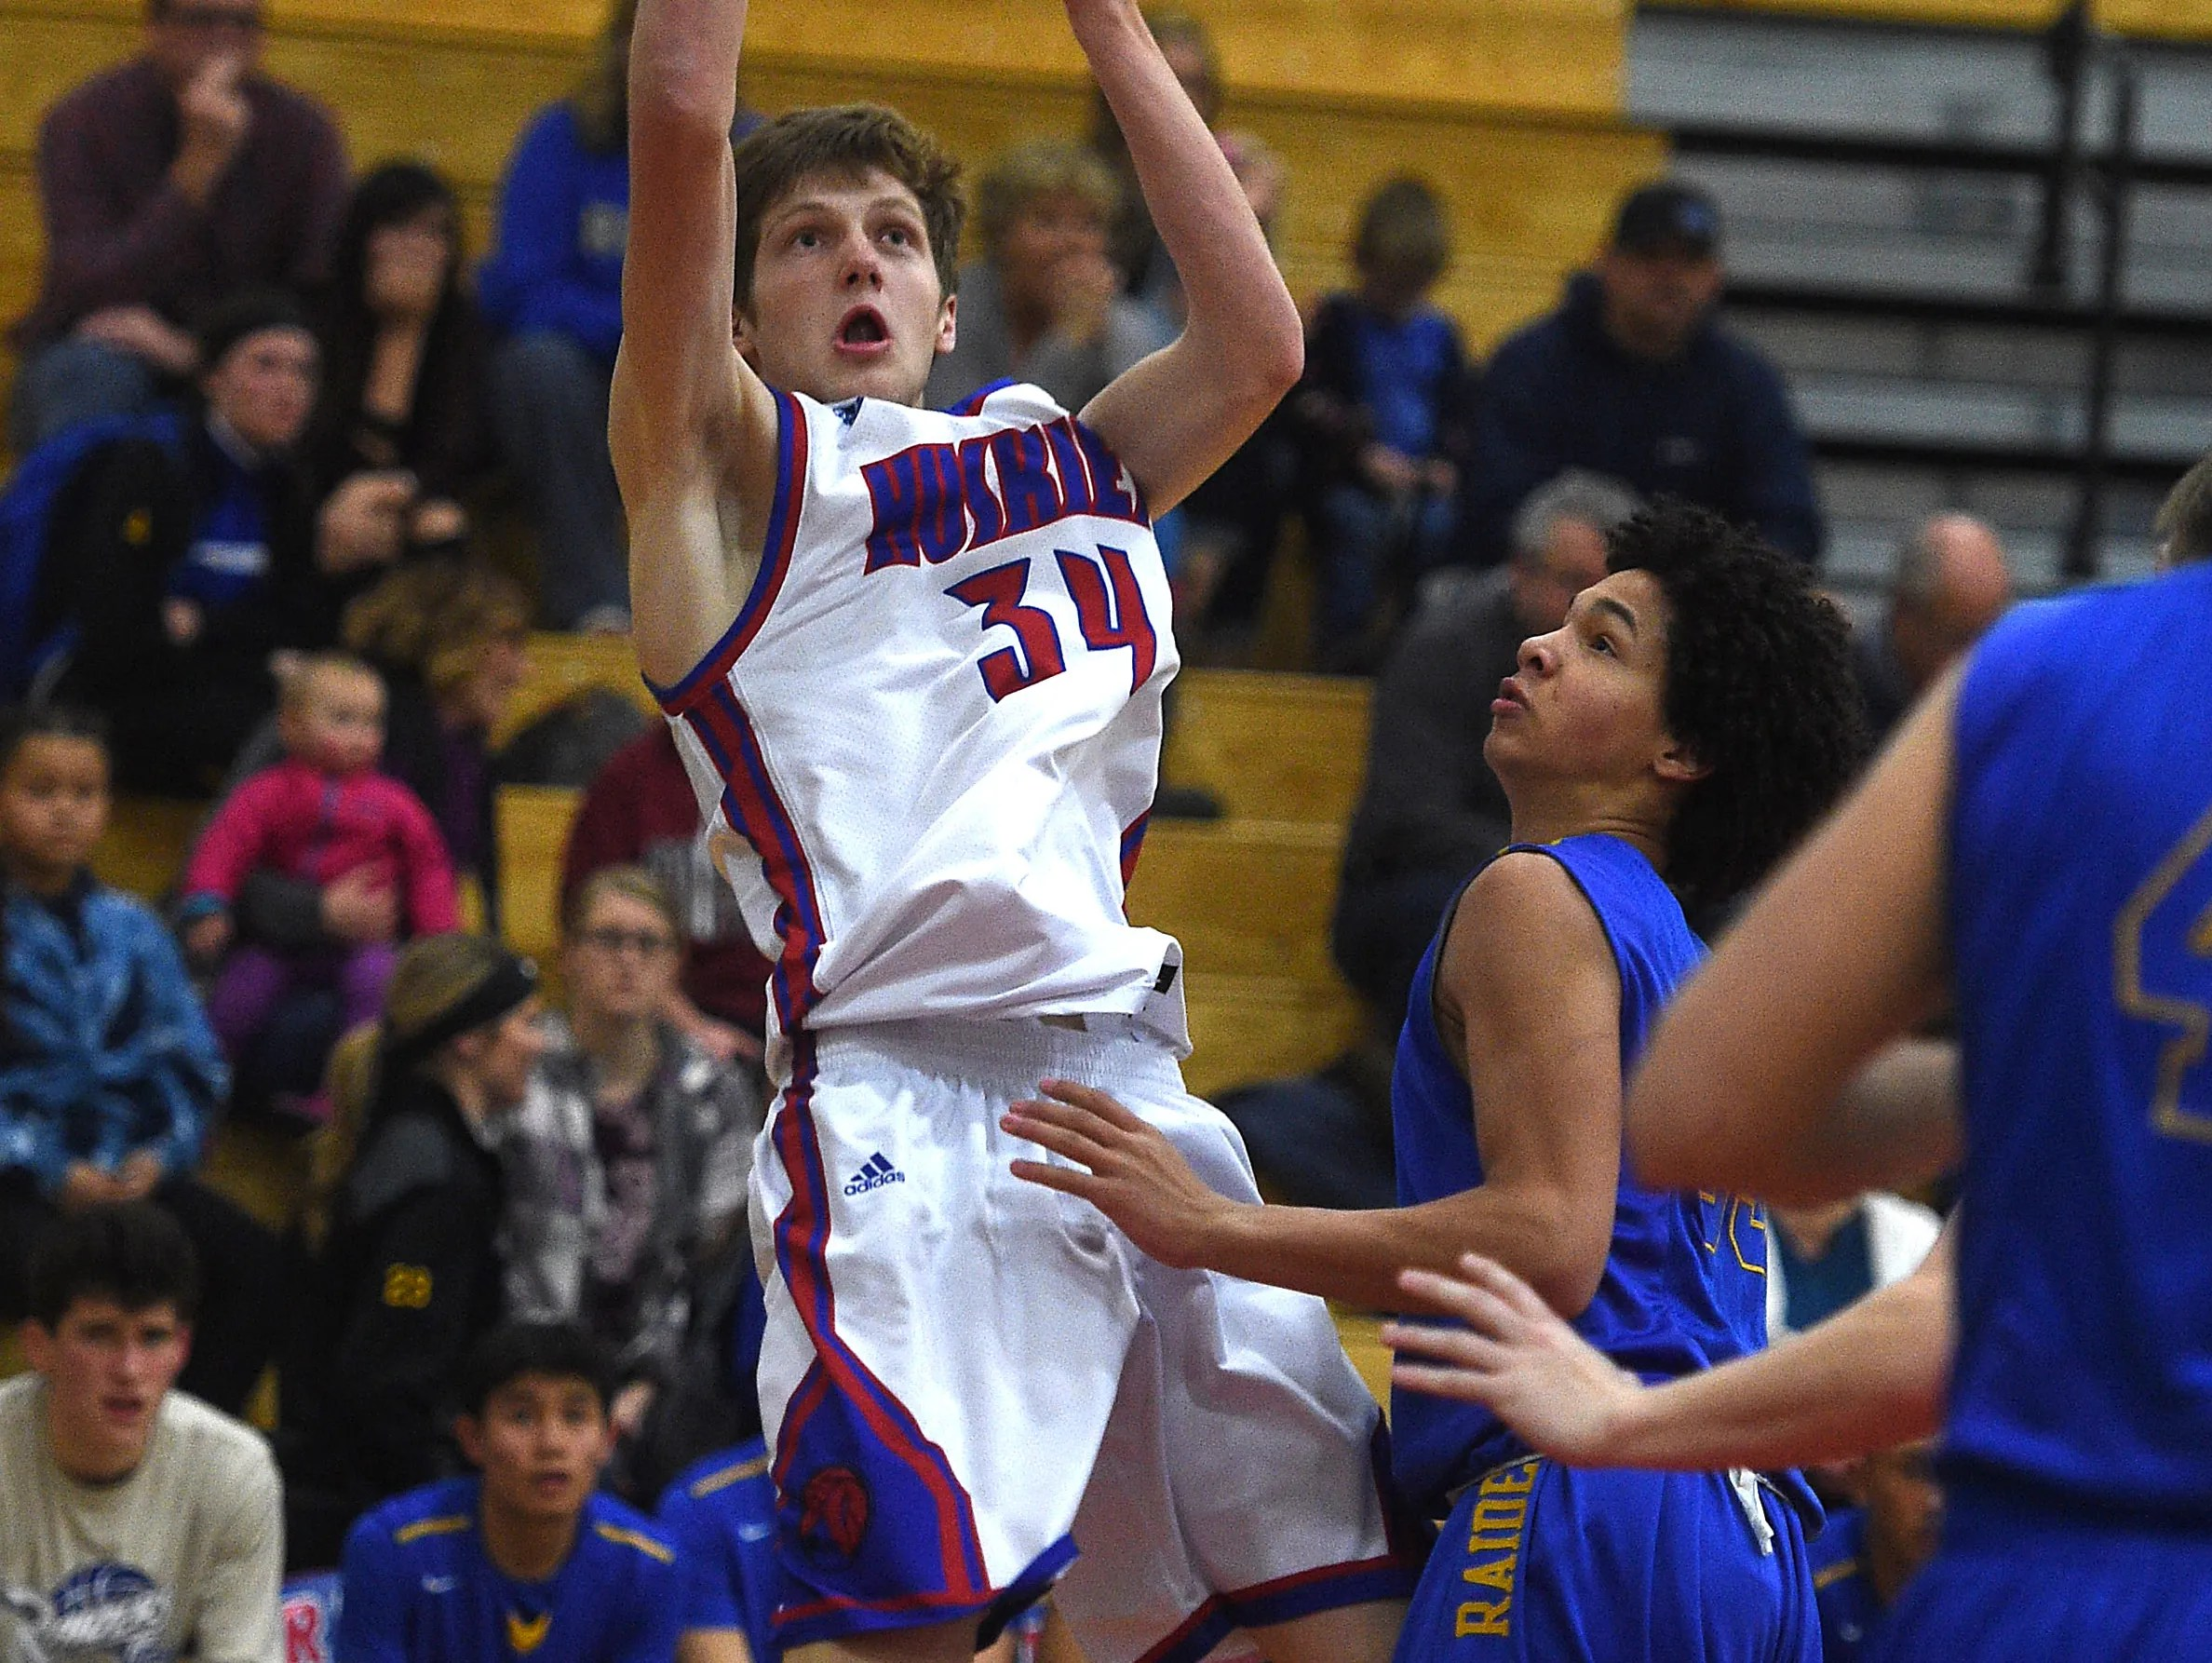 Boys basketball: Reno holds off Reed | USA TODAY High School